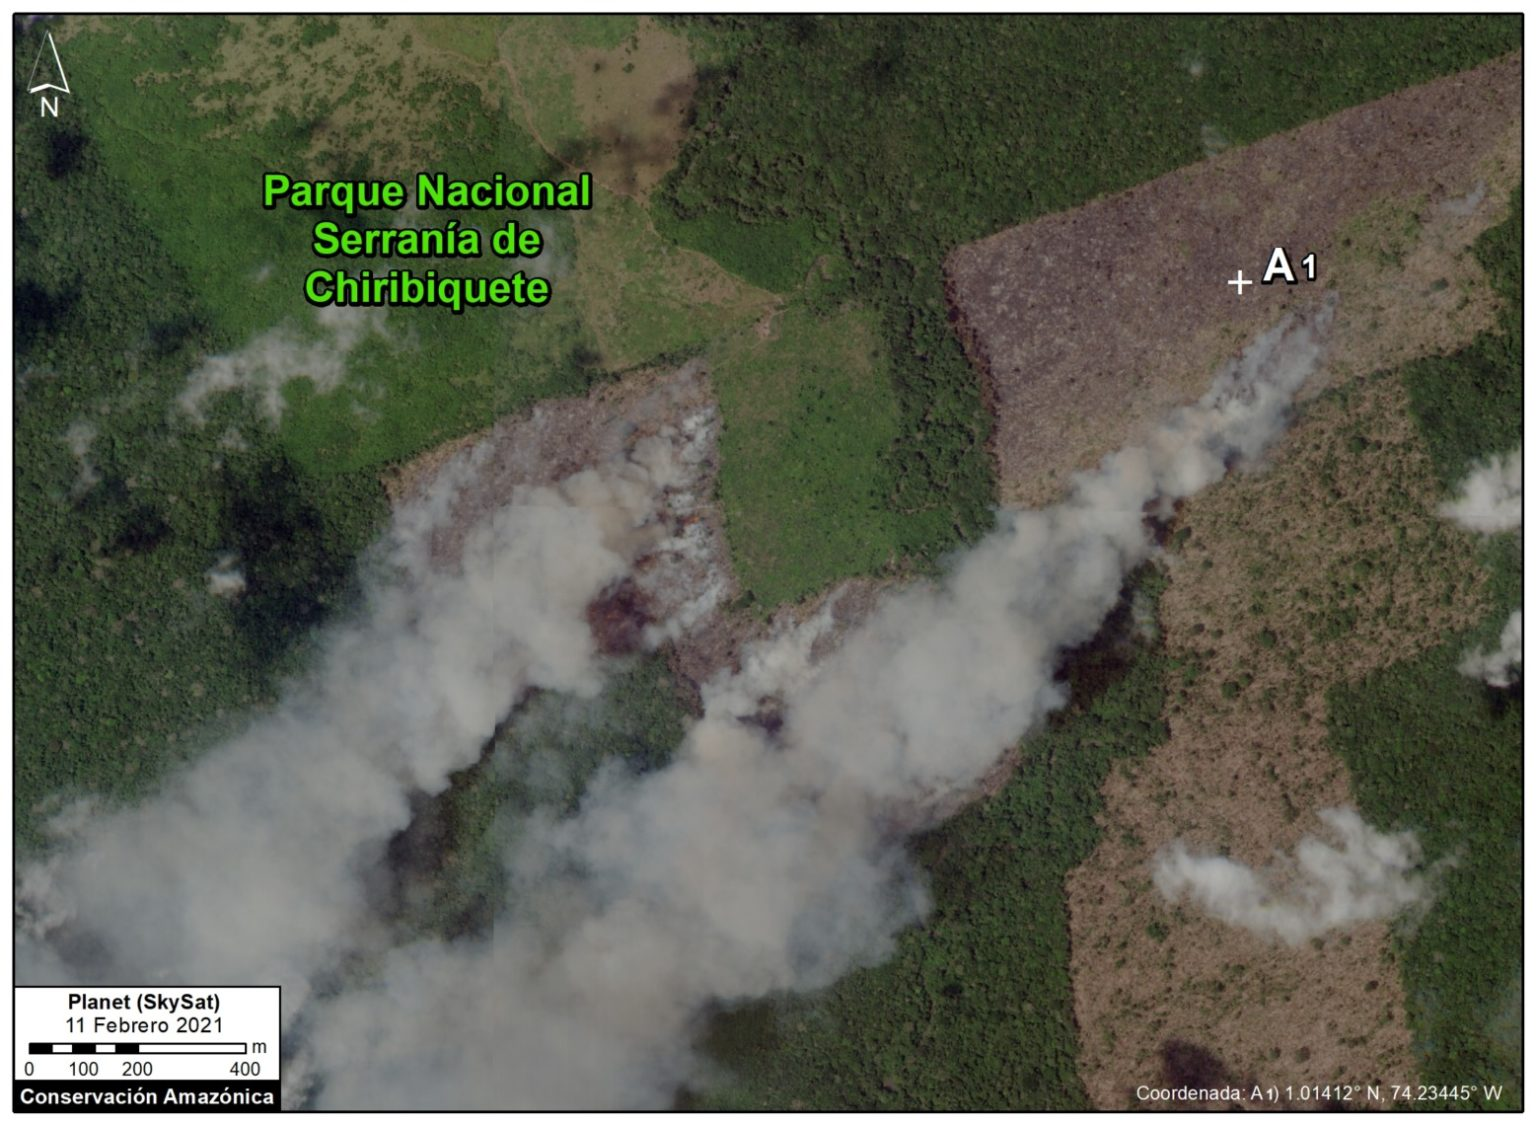 A fire inside Chiribiquete National Park (image captured Feb. 11, 2021) burned areas that had recently been deforested. Image courtesy of Planet (SkySat).